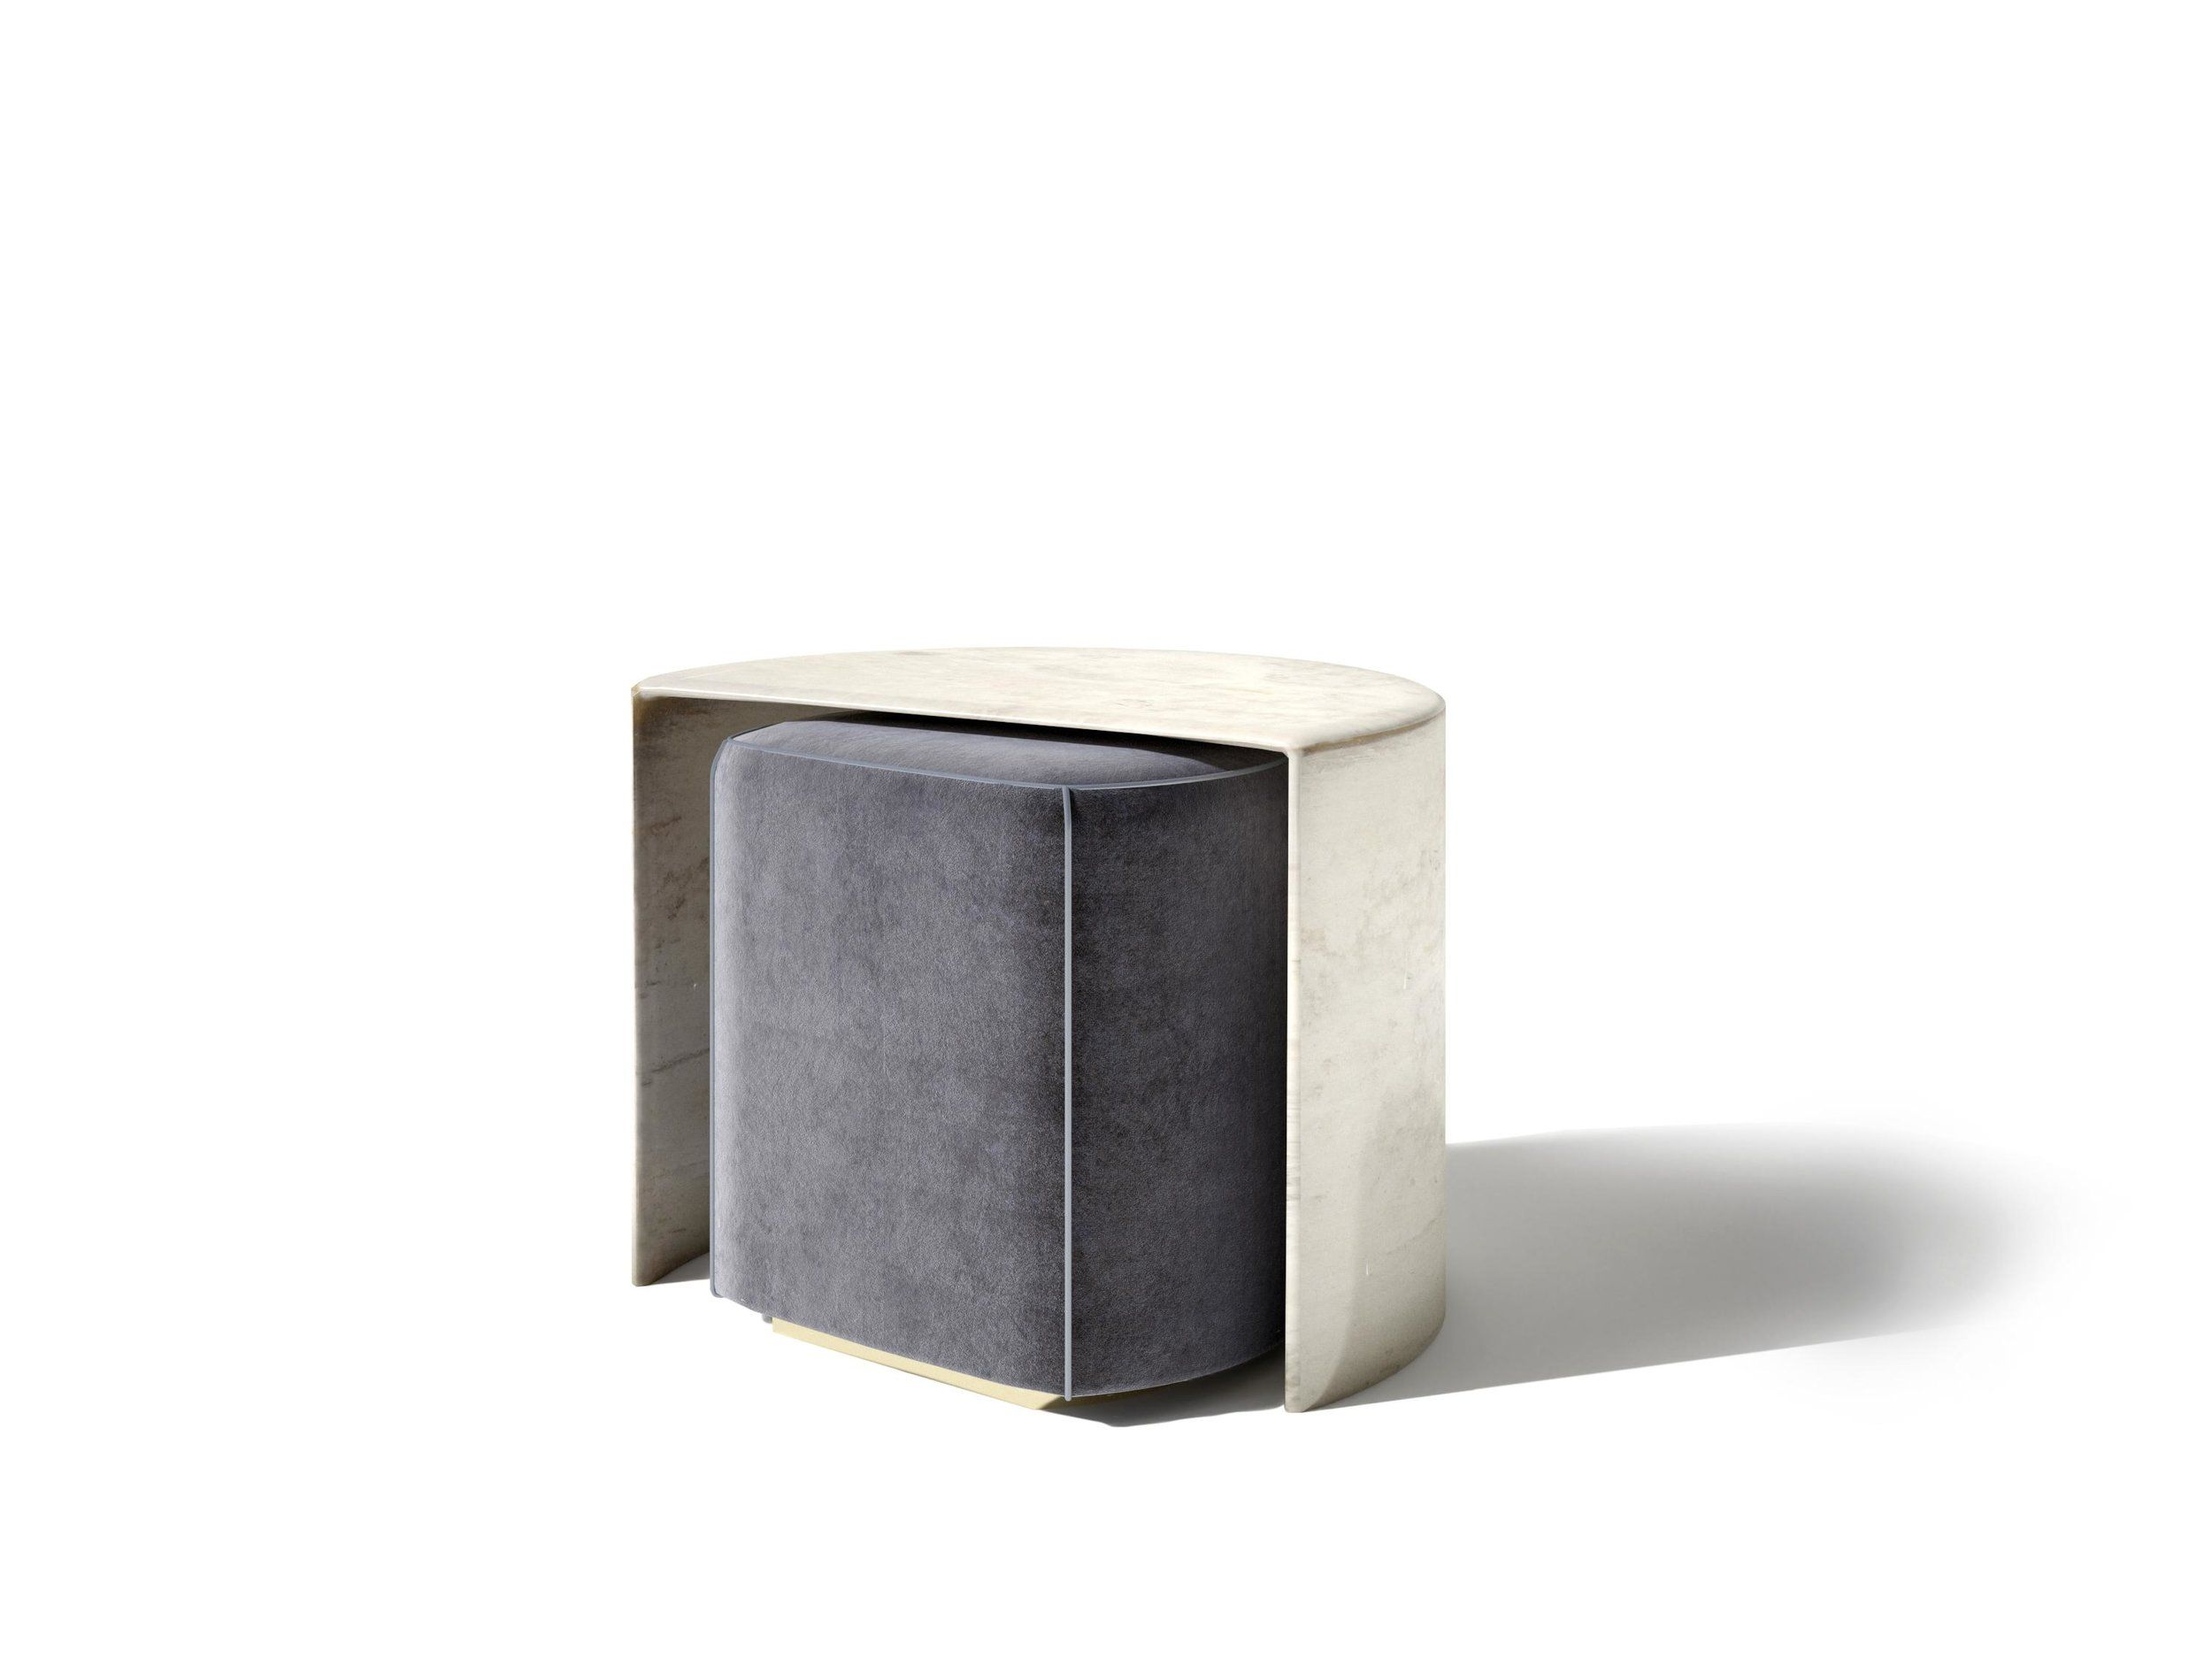 Shell By Privatiselectionem For Galerie Sors Small Table And Pouf In Hand Silvered Brass And Velour Design Contemporain Meuble Meuble Design